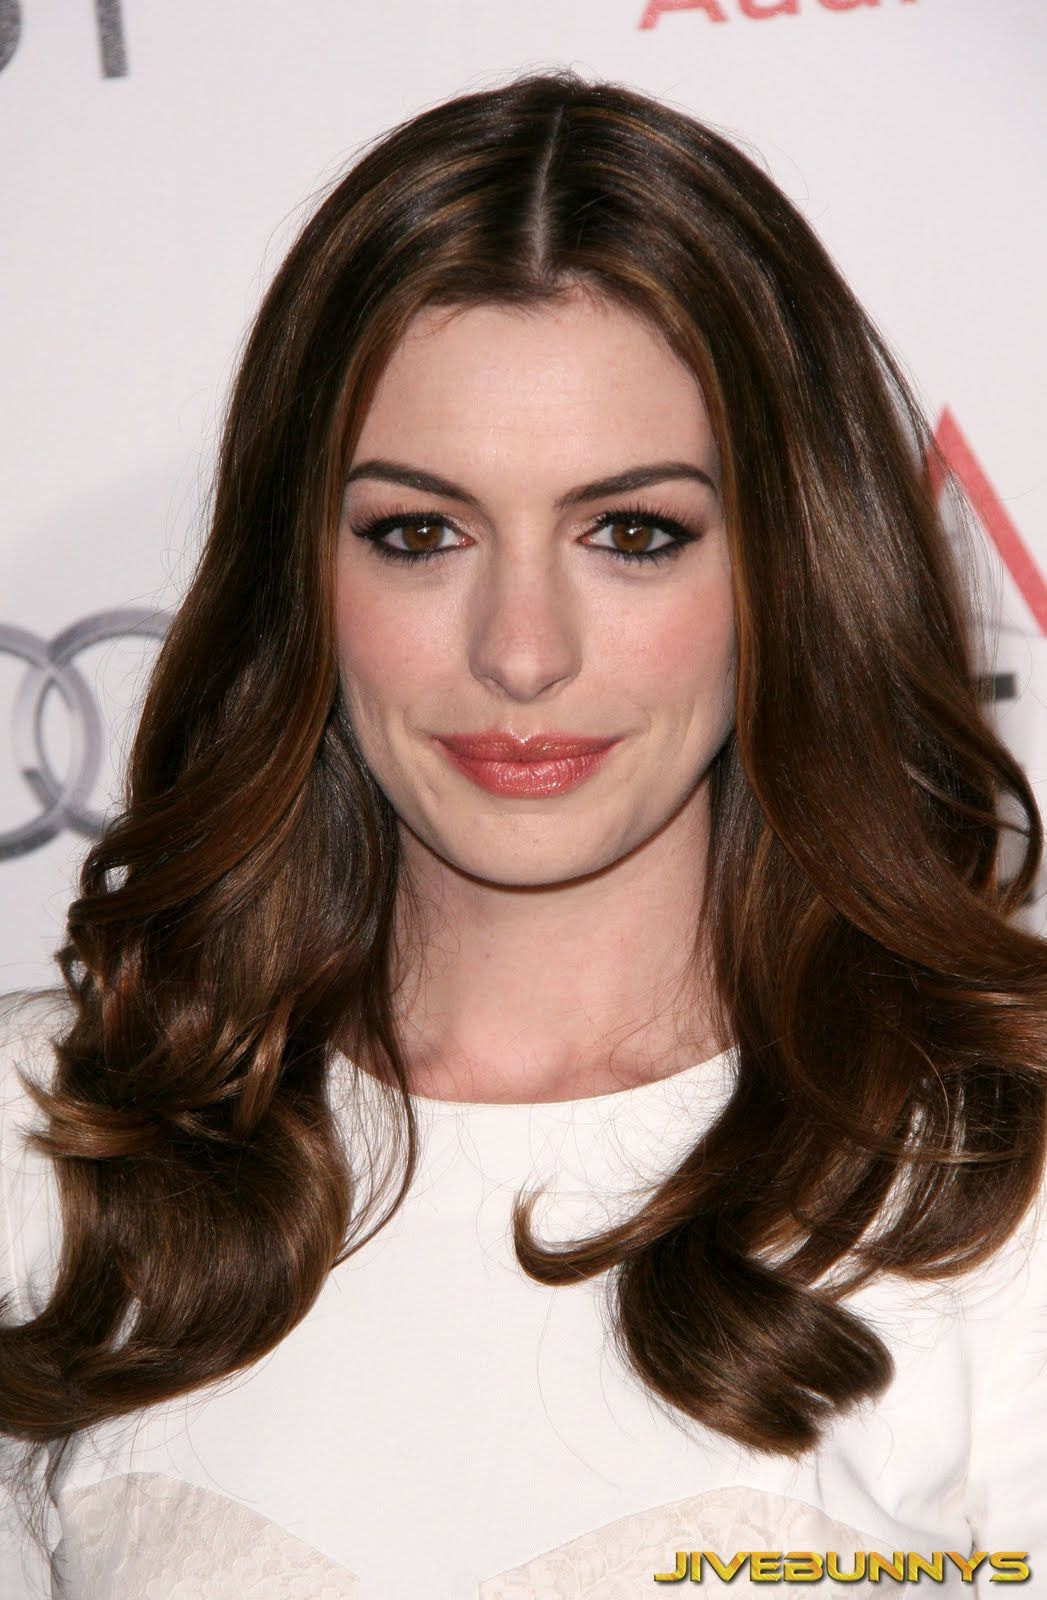 Pin by aran on anne hathaway pinterest anne hathaway and actresses